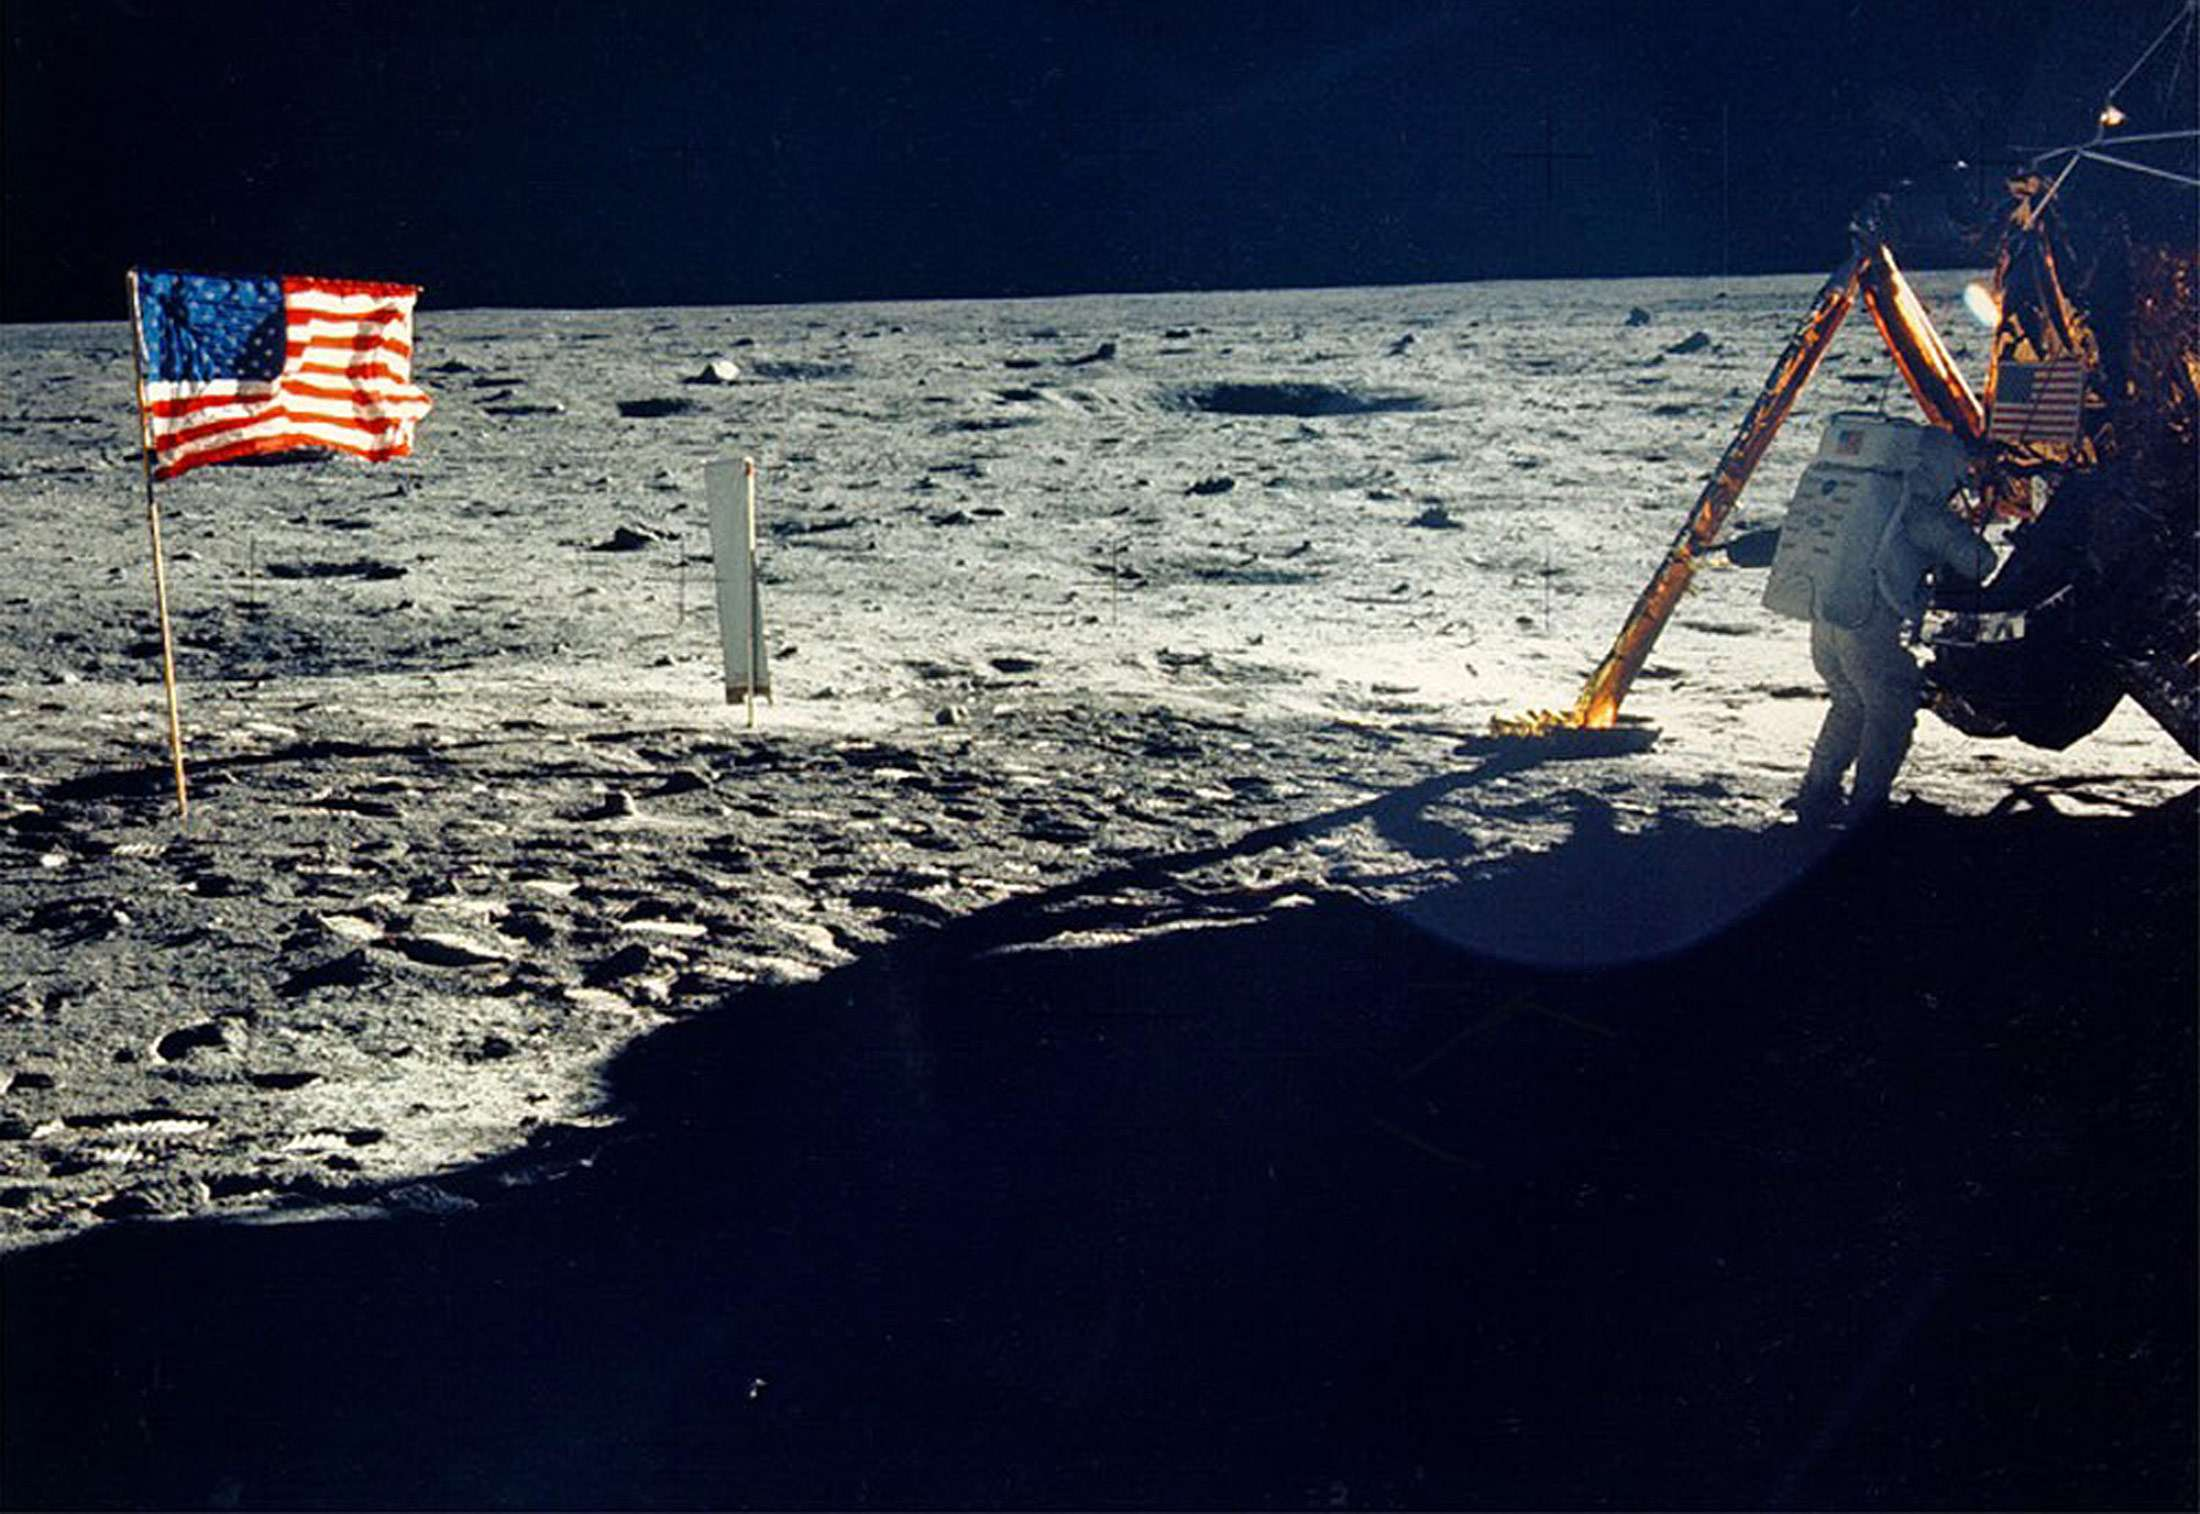 Neil Armstrong works on his space craft on the moon. Photographer: NASA/Hulton Archive